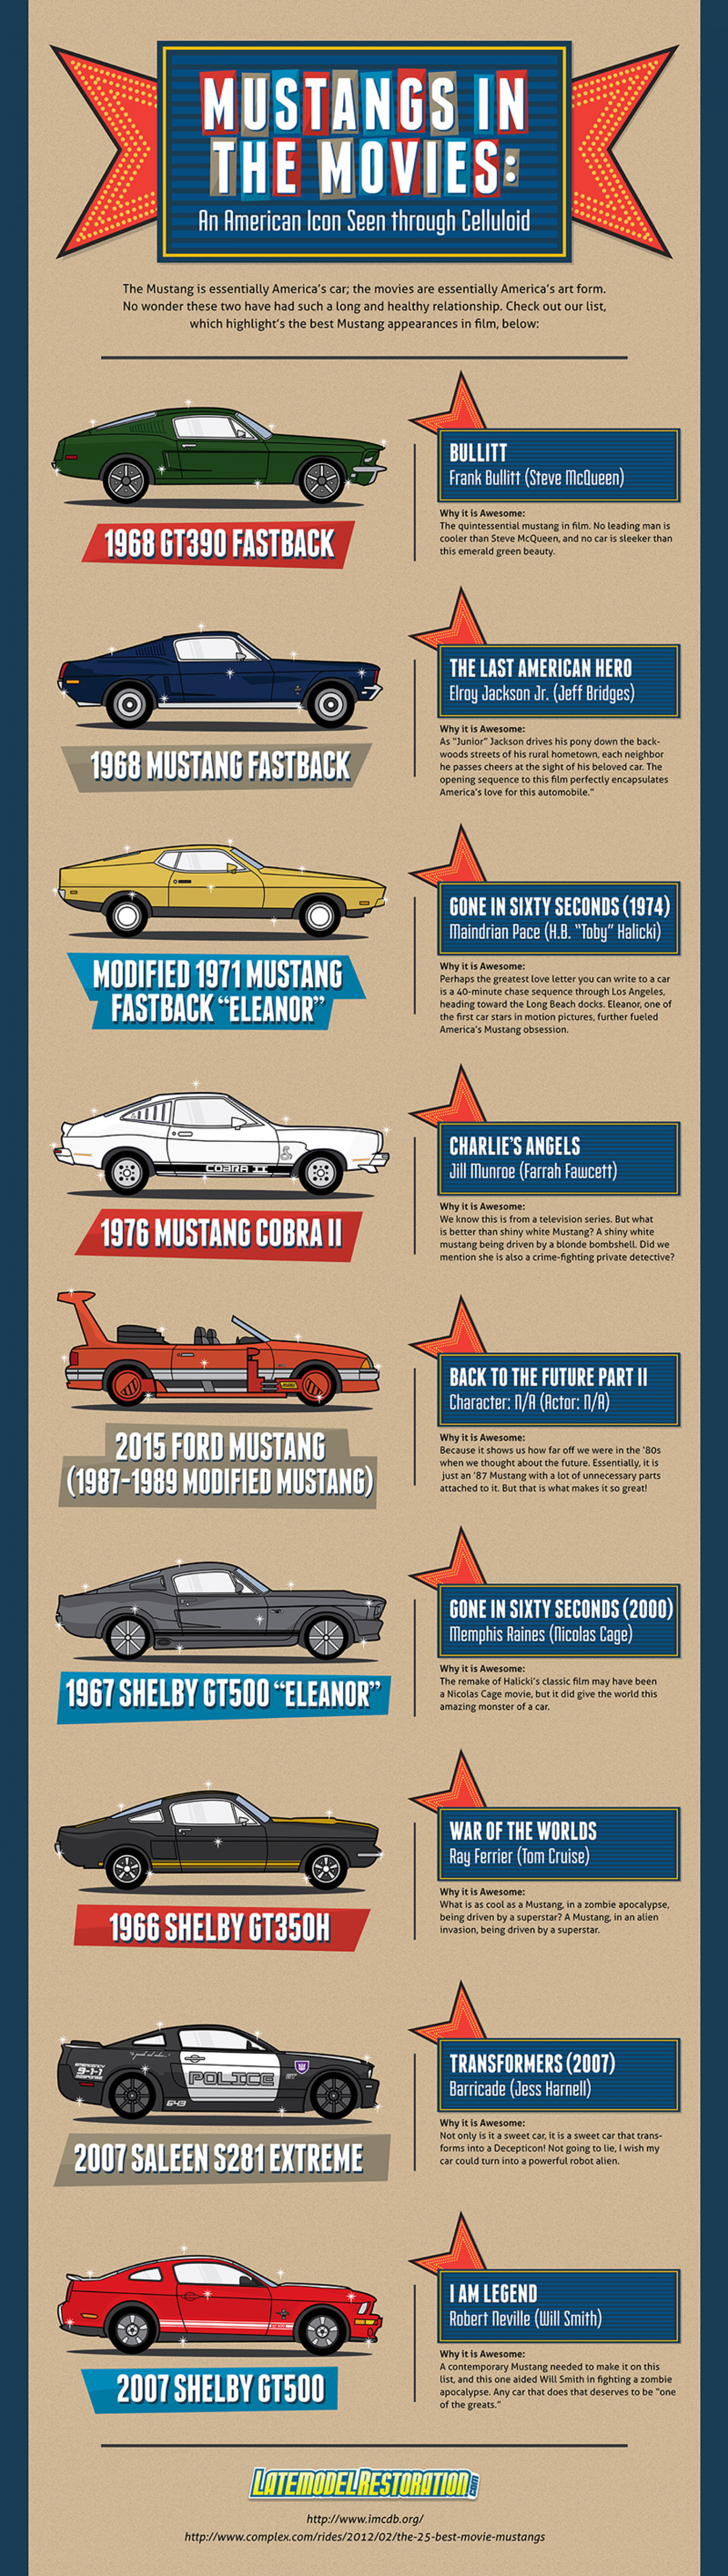 Mustangs in the Movies, An American Icon Seen Through Celluloid Infographic